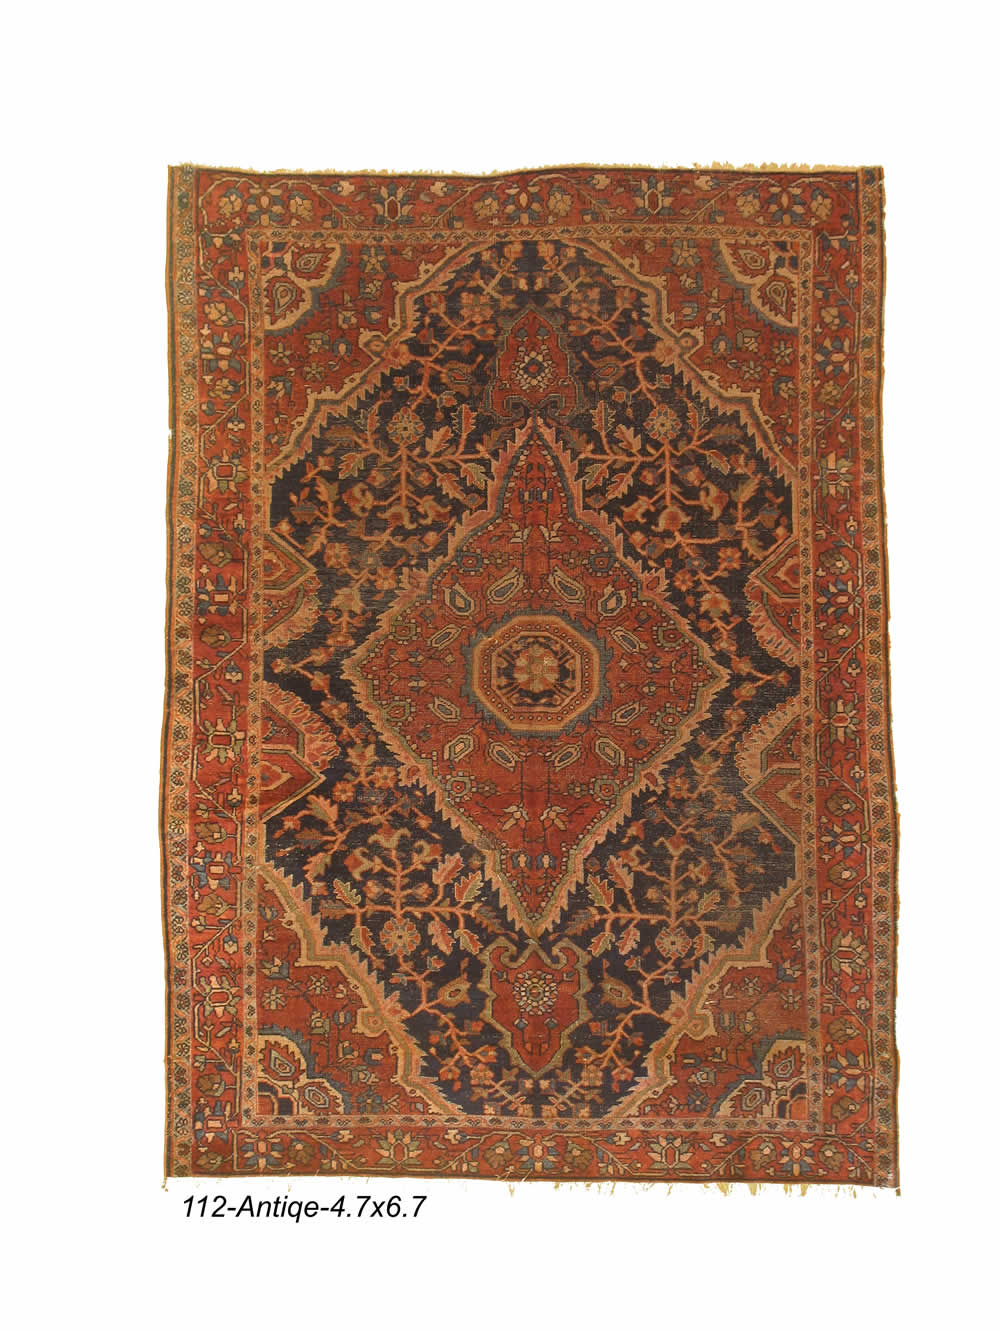 Antique Persian Sarogh Rug